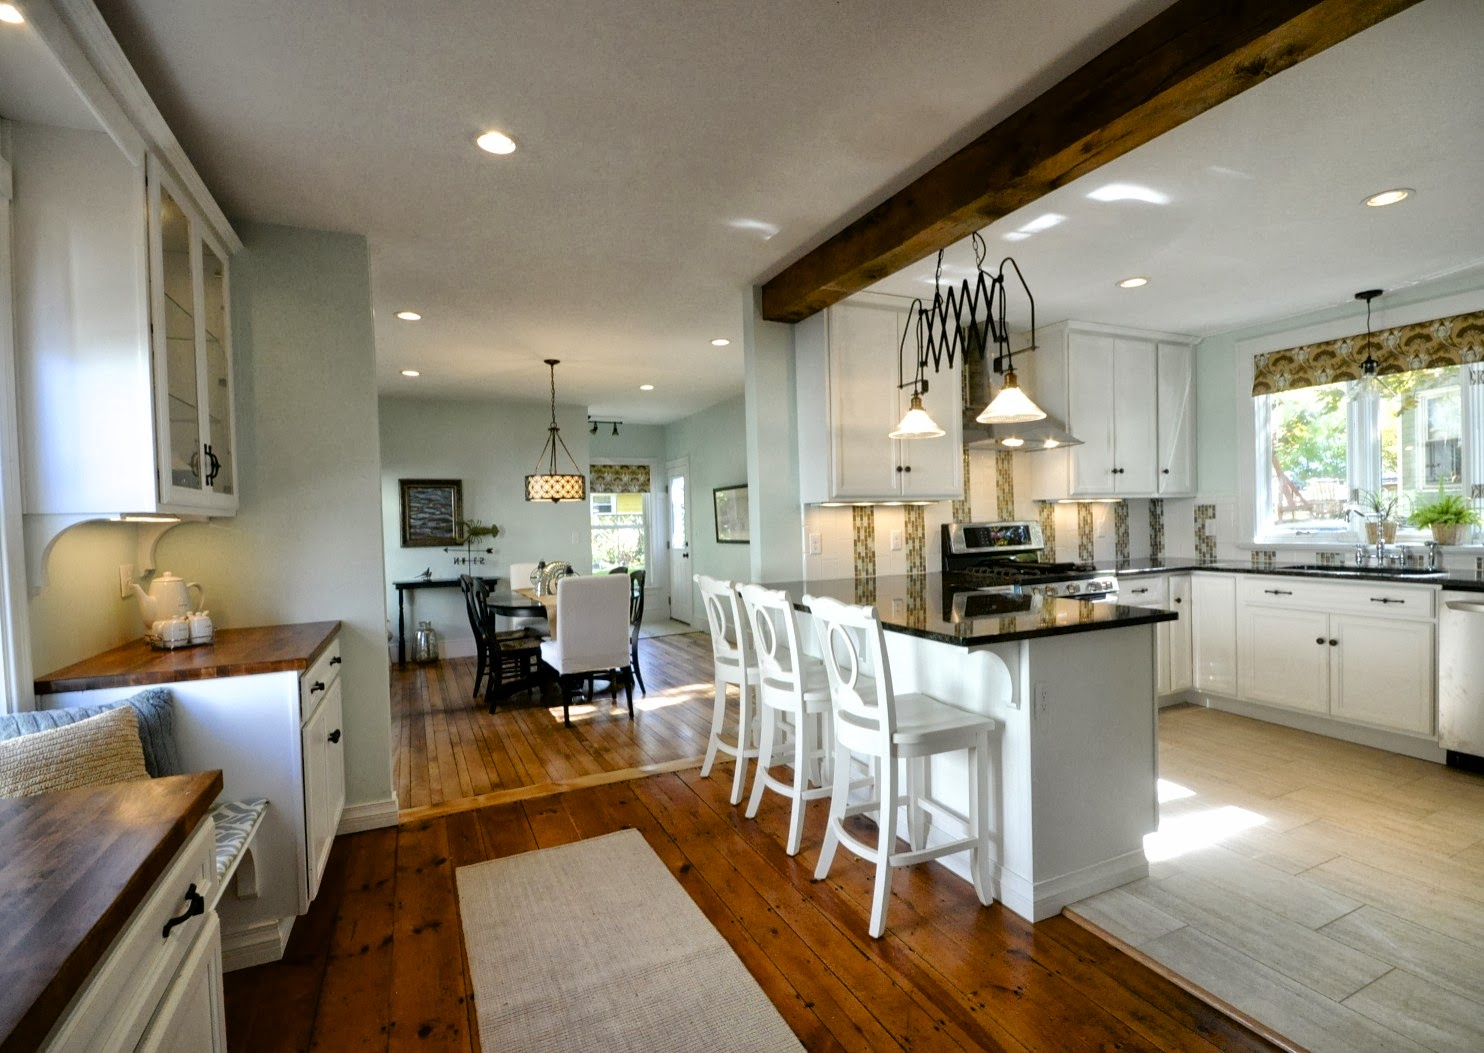 Attractive Create An Open Kitchen And Dining Area | SoPo Cottage Featured On  Remodelaholic.com #